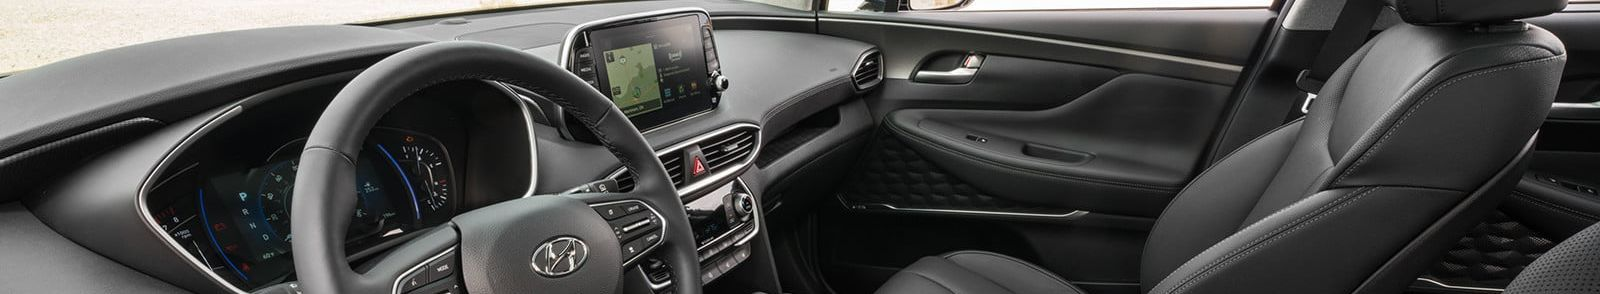 20198 Hyundai Santa Fe Center Console